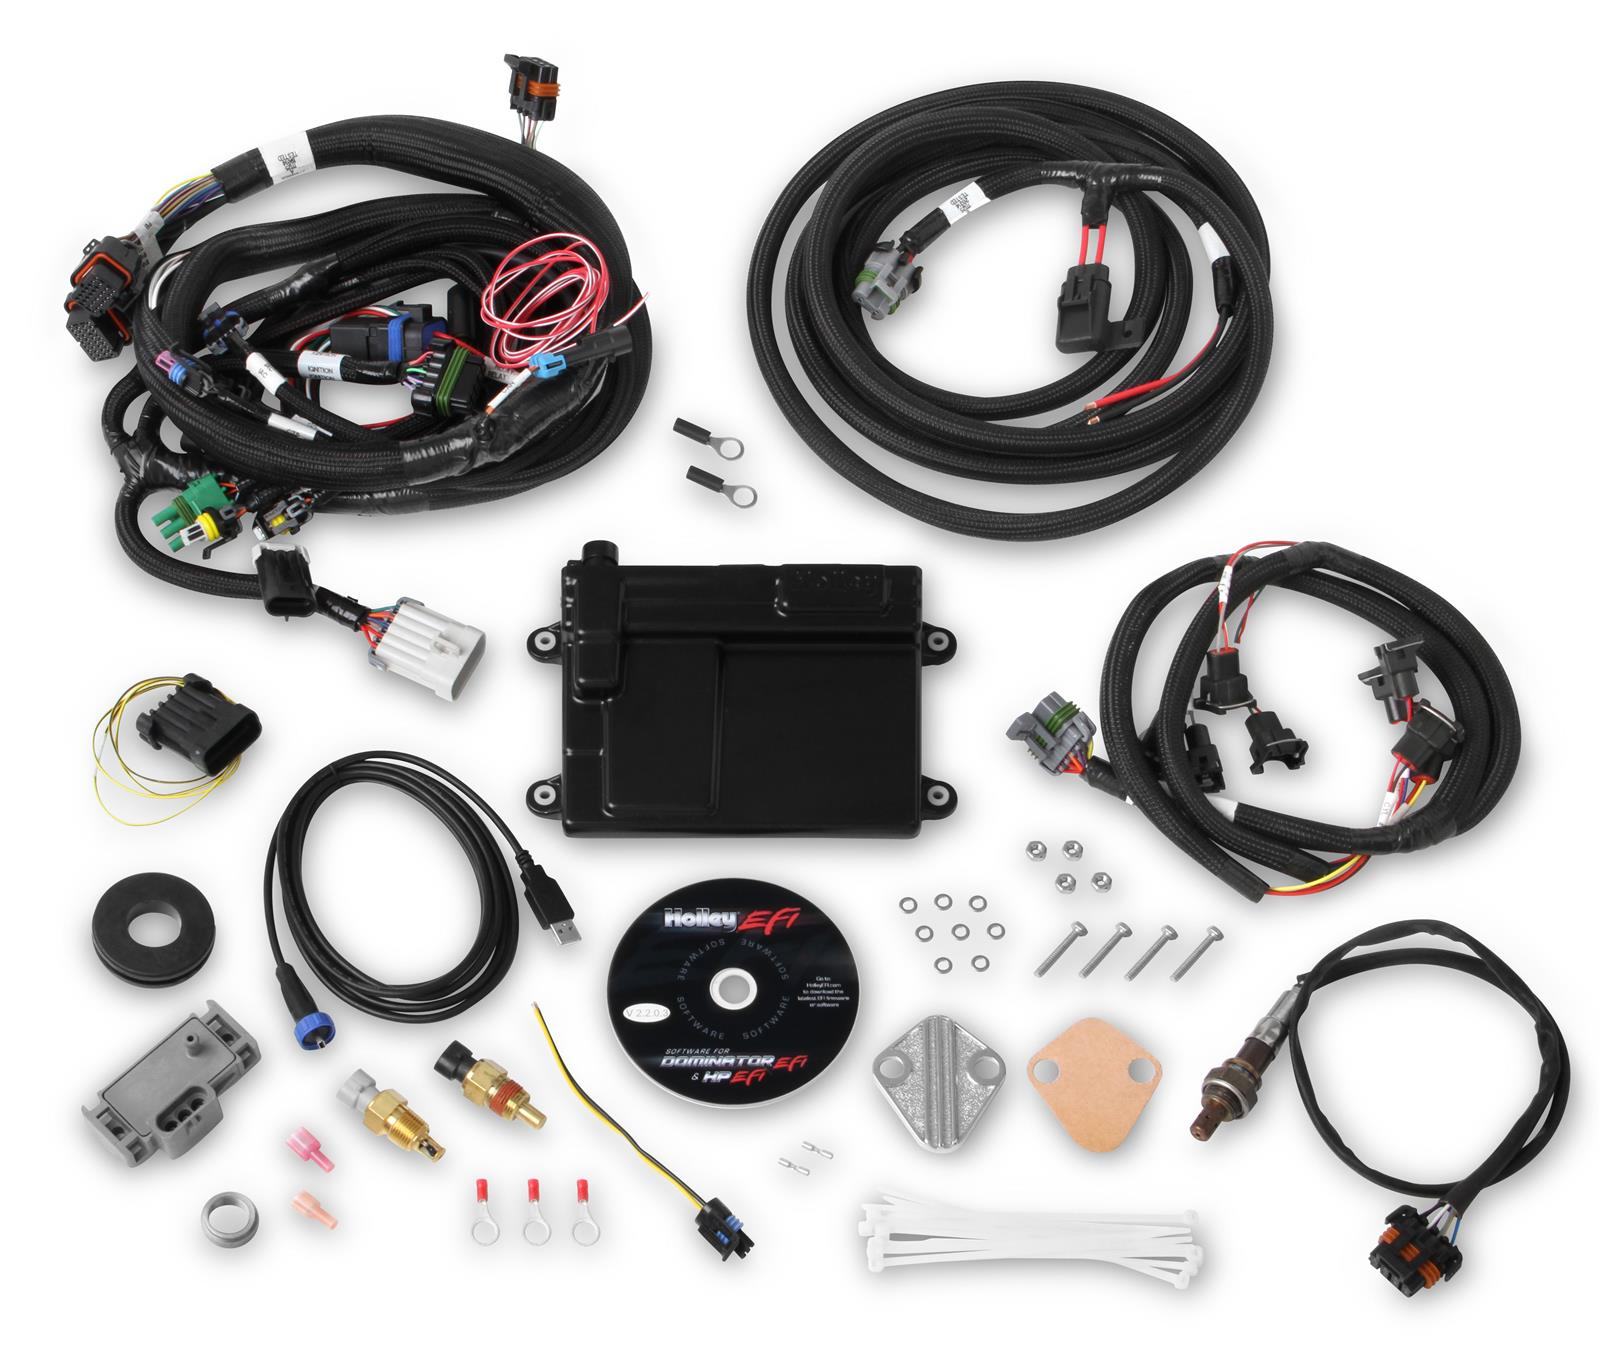 hight resolution of holley hp efi ecu and harness kits 550 606n free shipping on orders over 99 at summit racing